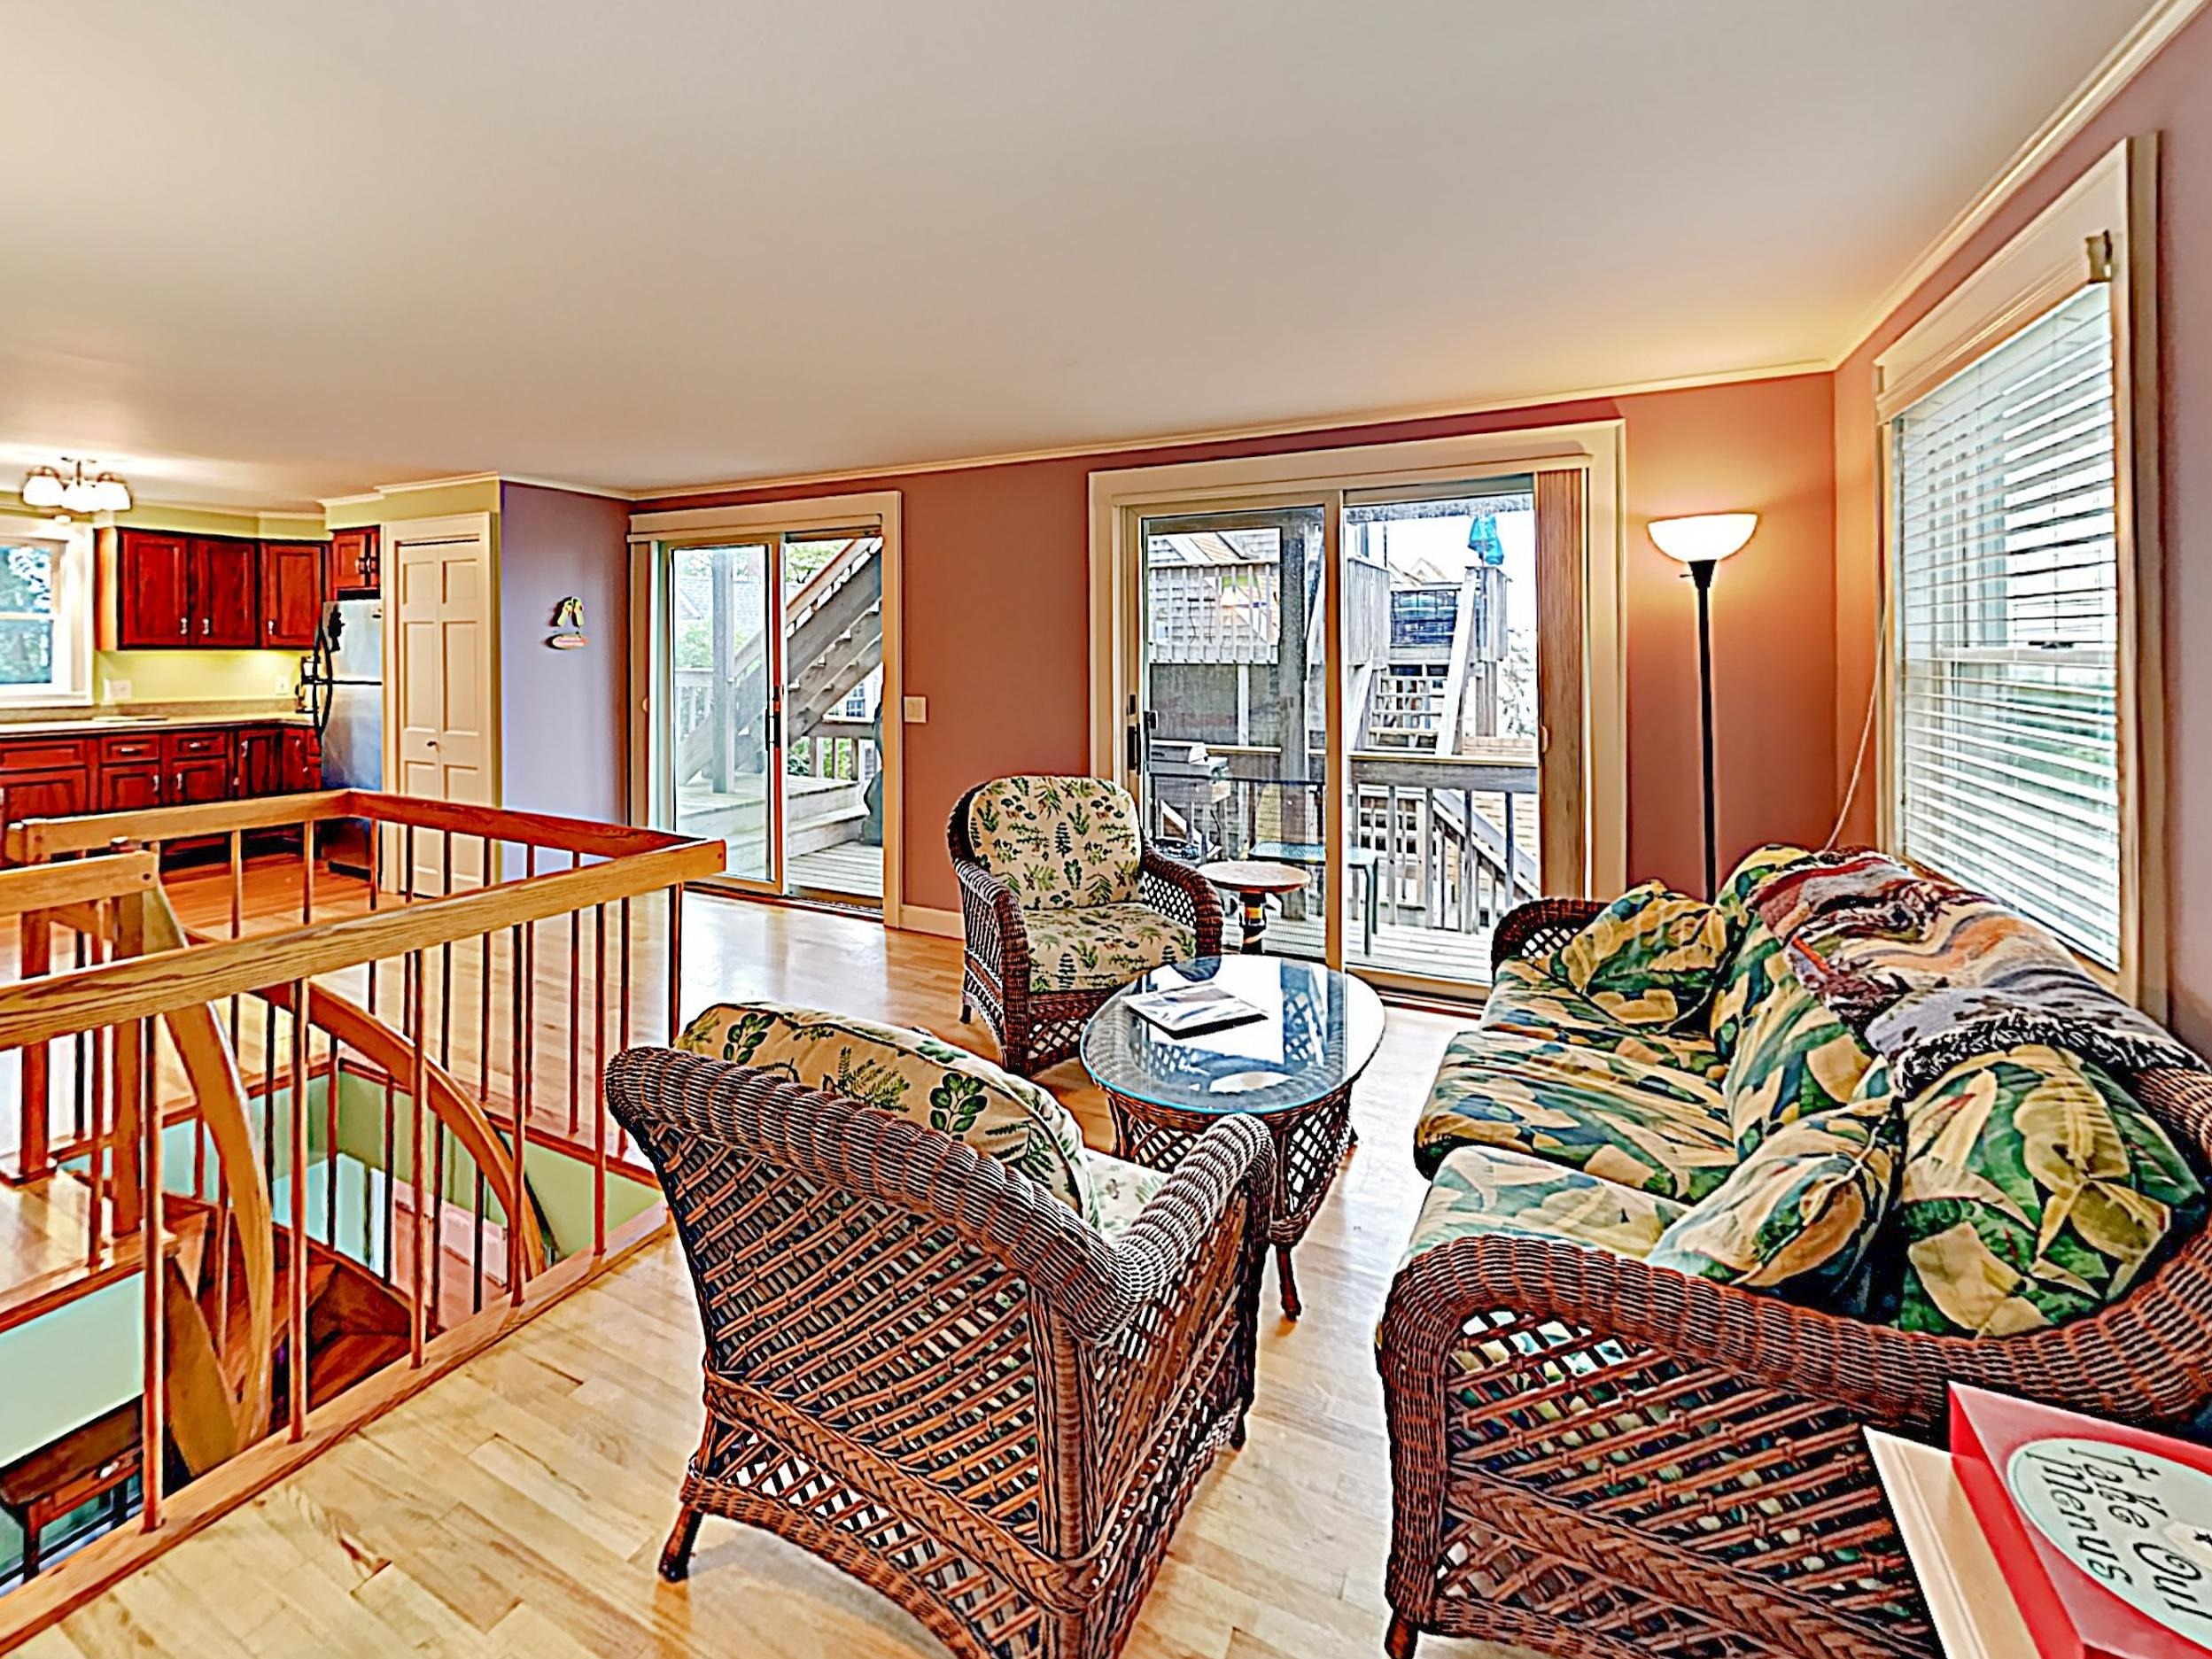 Welcome to Cape Cod! This condo is professionally managed by TurnKey Vacation Rentals.